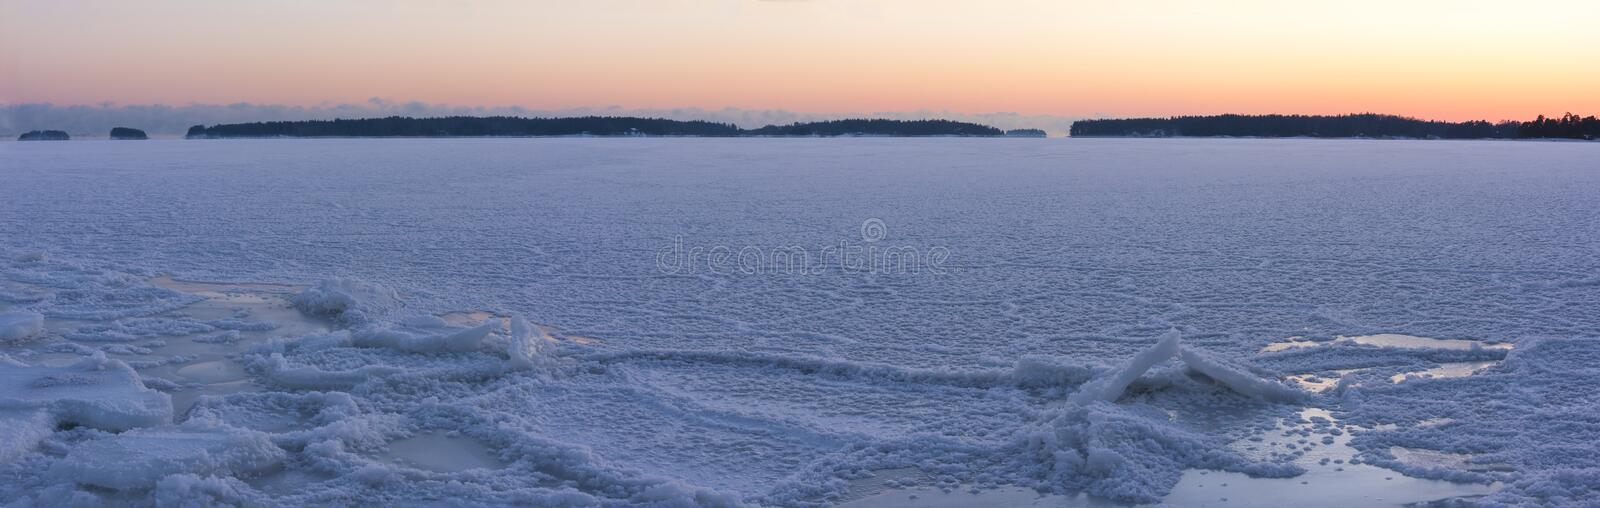 Winter sunset at frozen sea royalty free stock image